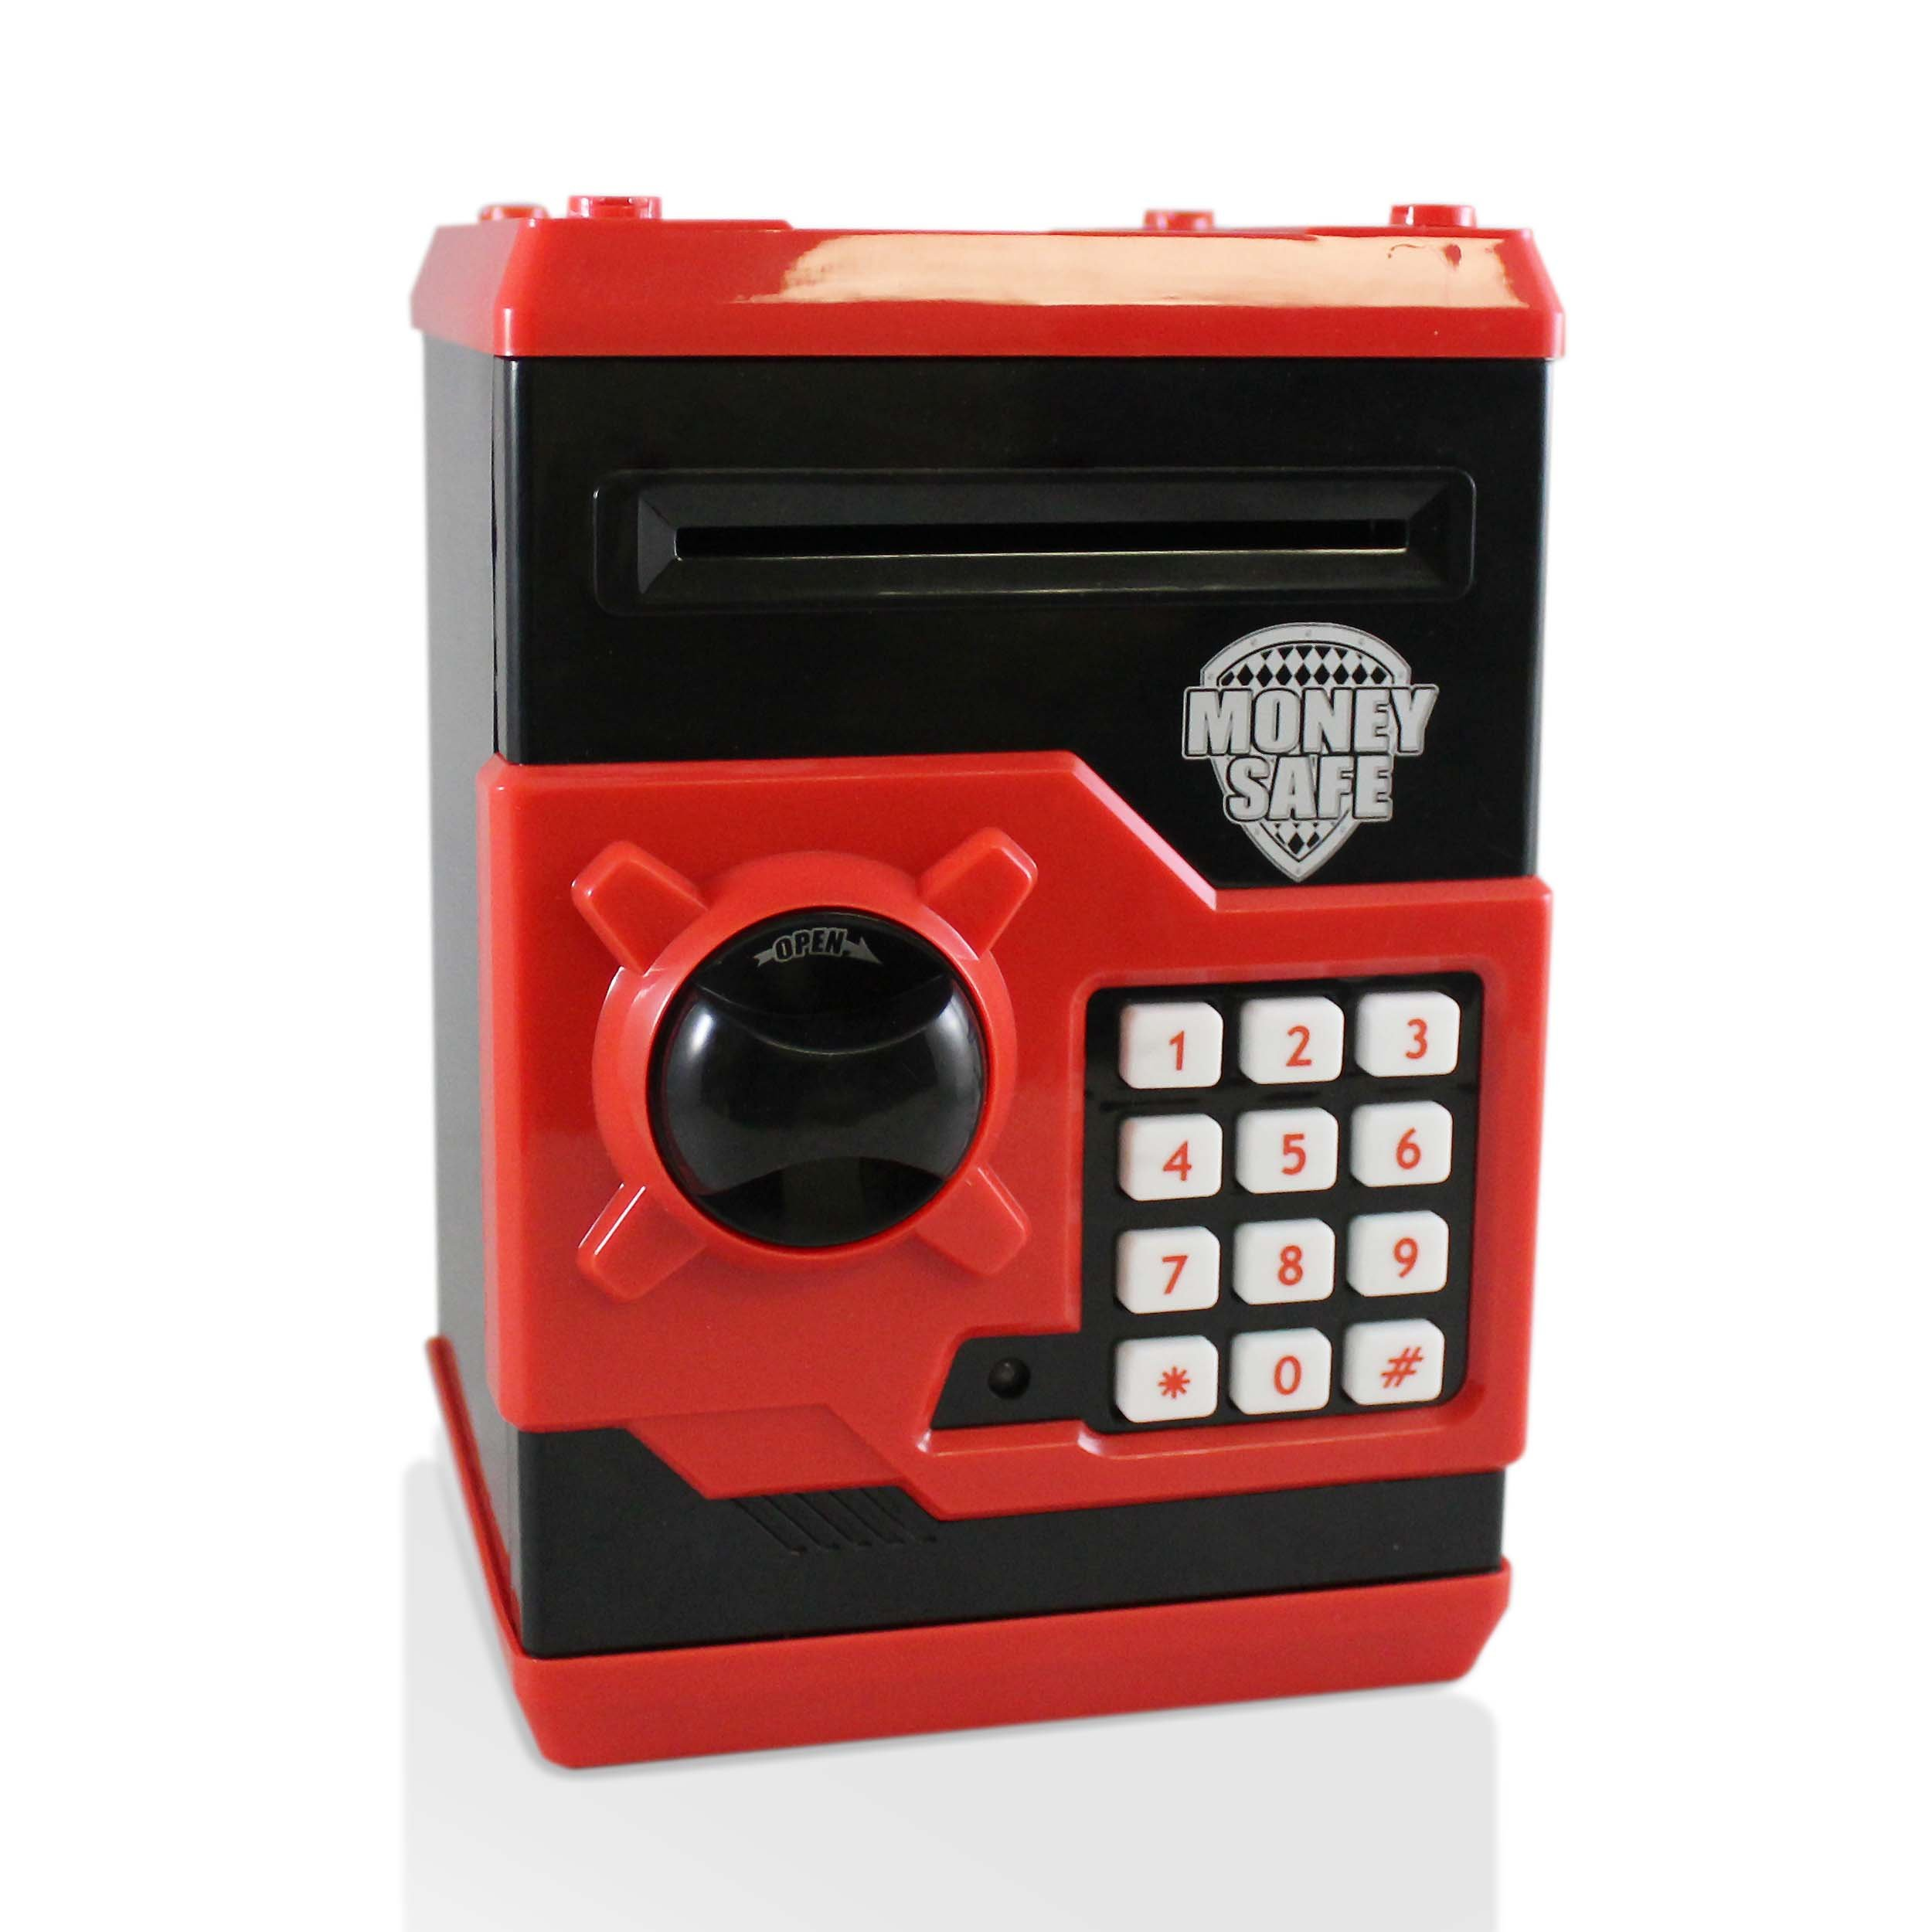 Black Red Safe Coin Bank For Kids - Authentic ATM Money Saver Keeps Cash, Toys, and Jewelry Inside Safe Inside - Auto Insert Bills and Electronic Password - Cool Piggy Bank Makes A Great Birthday Gift